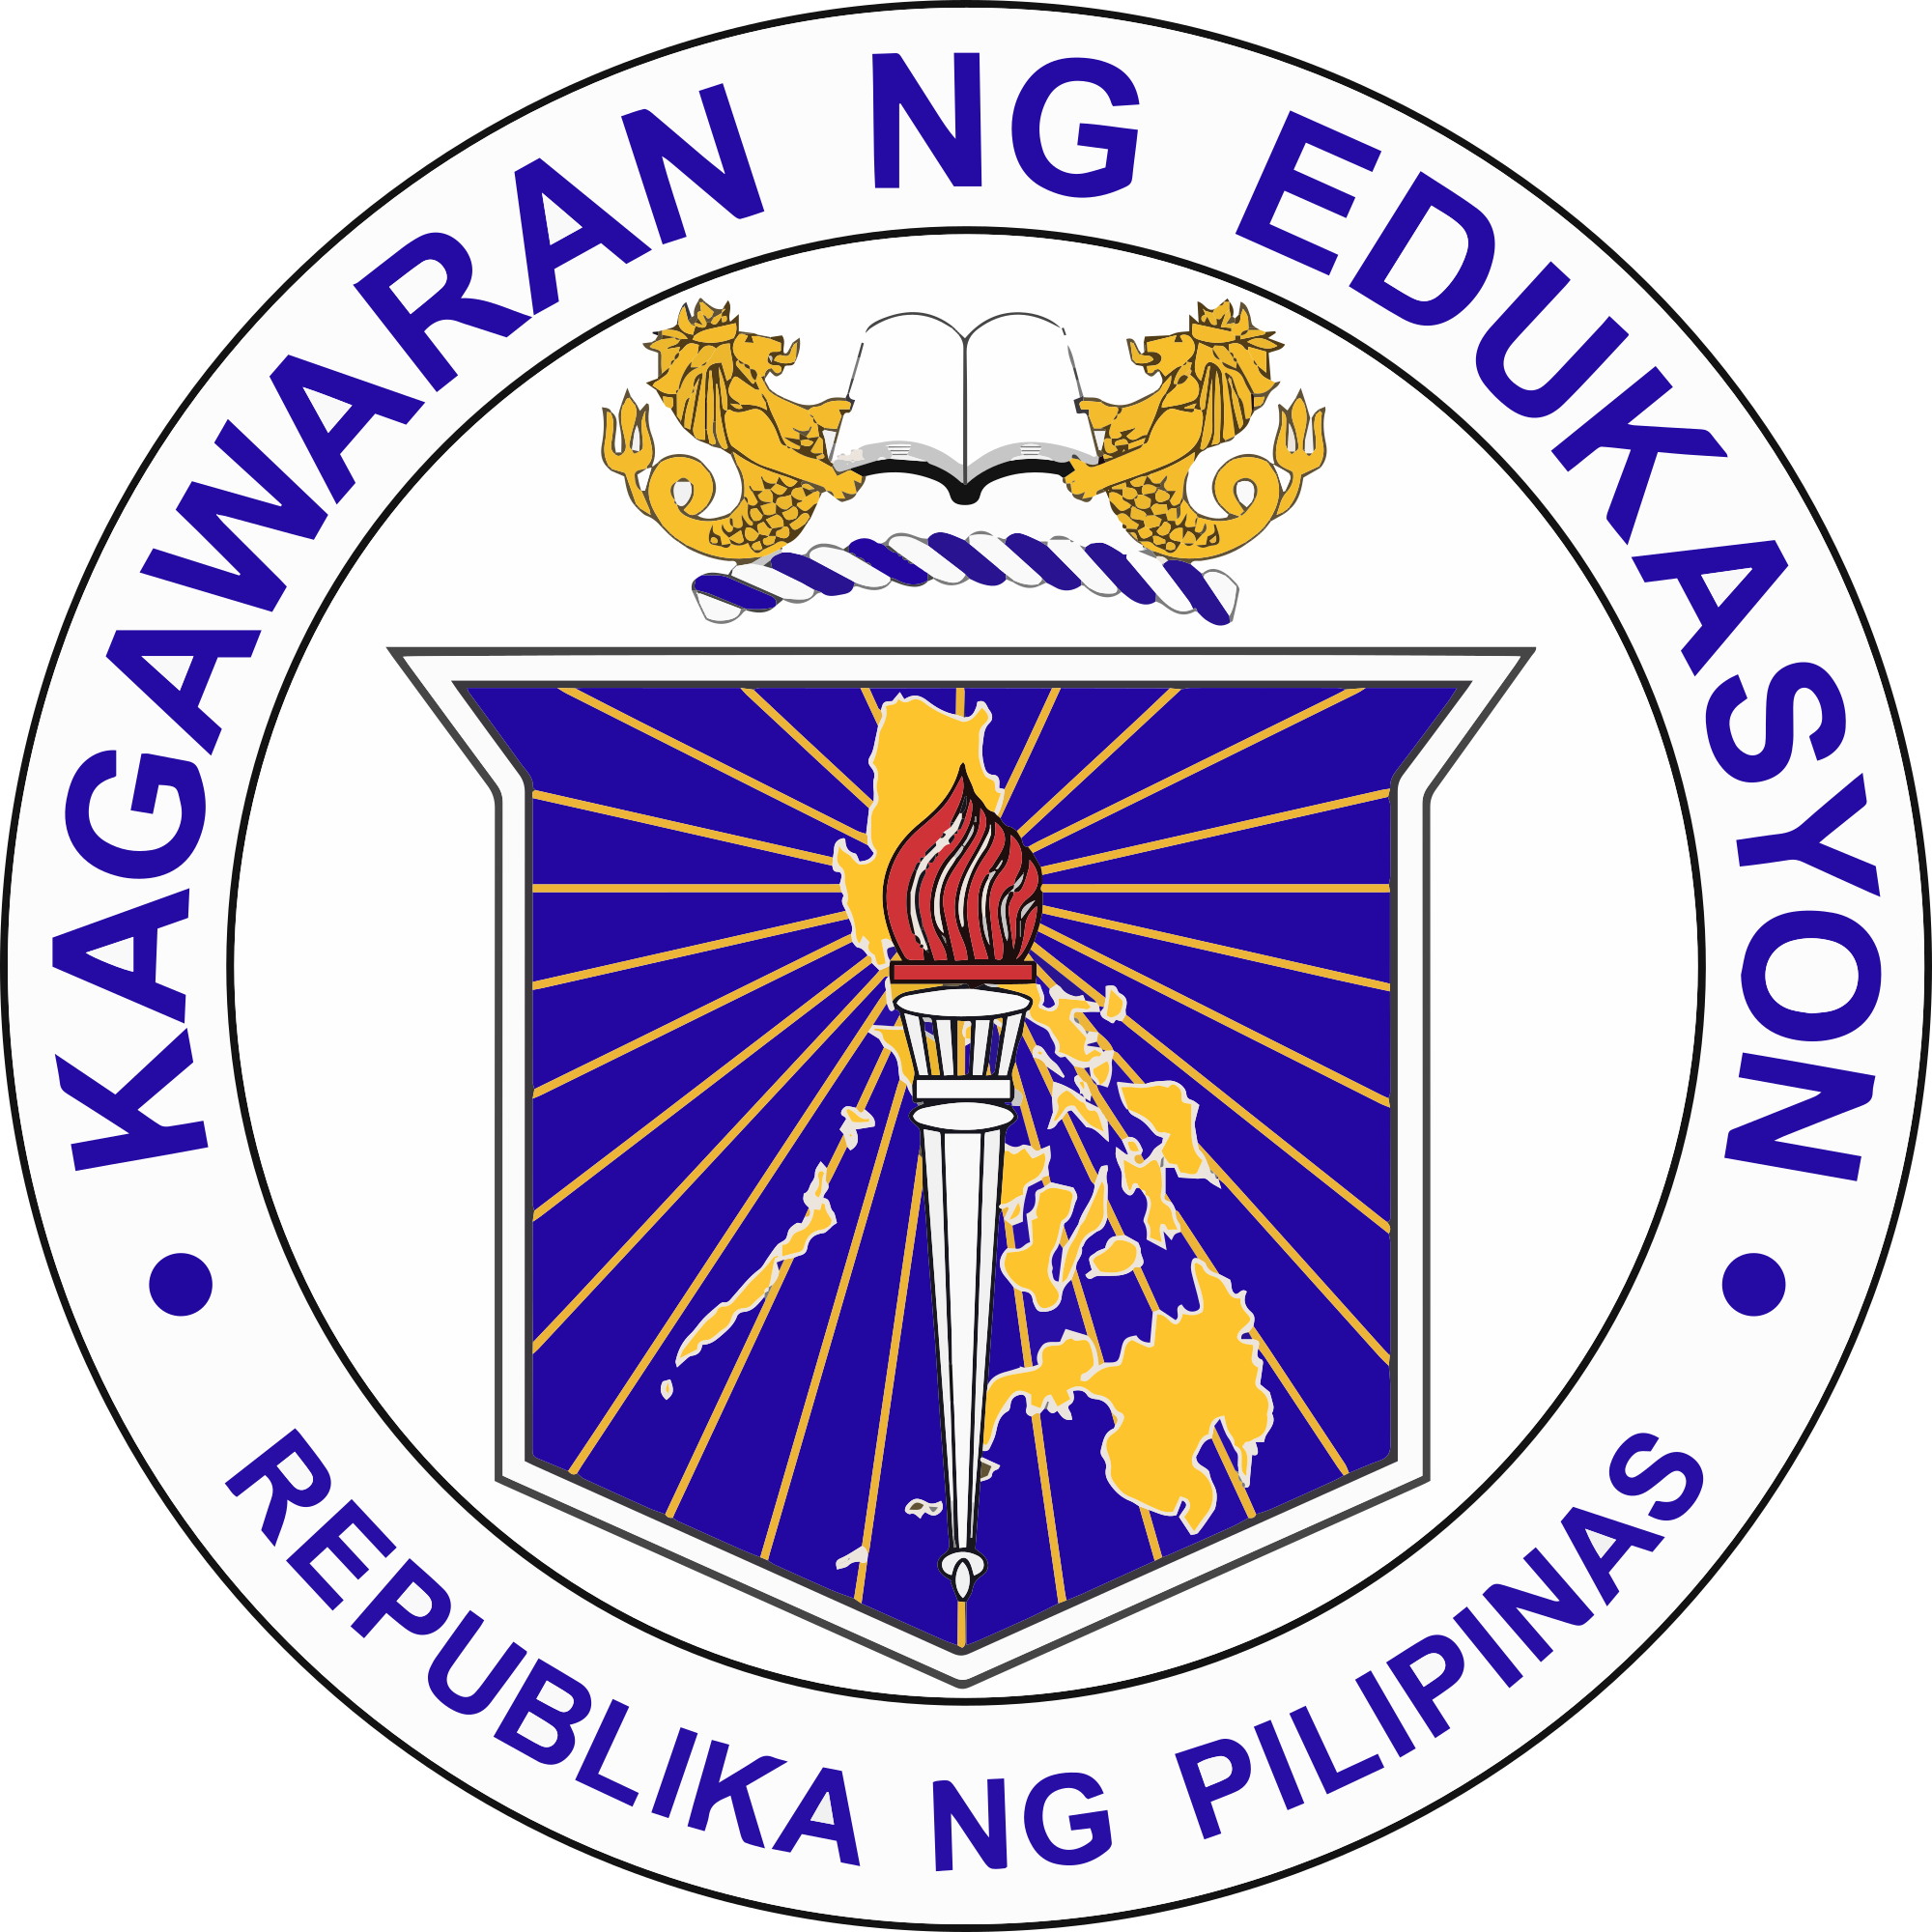 Department of Education (Philippines).